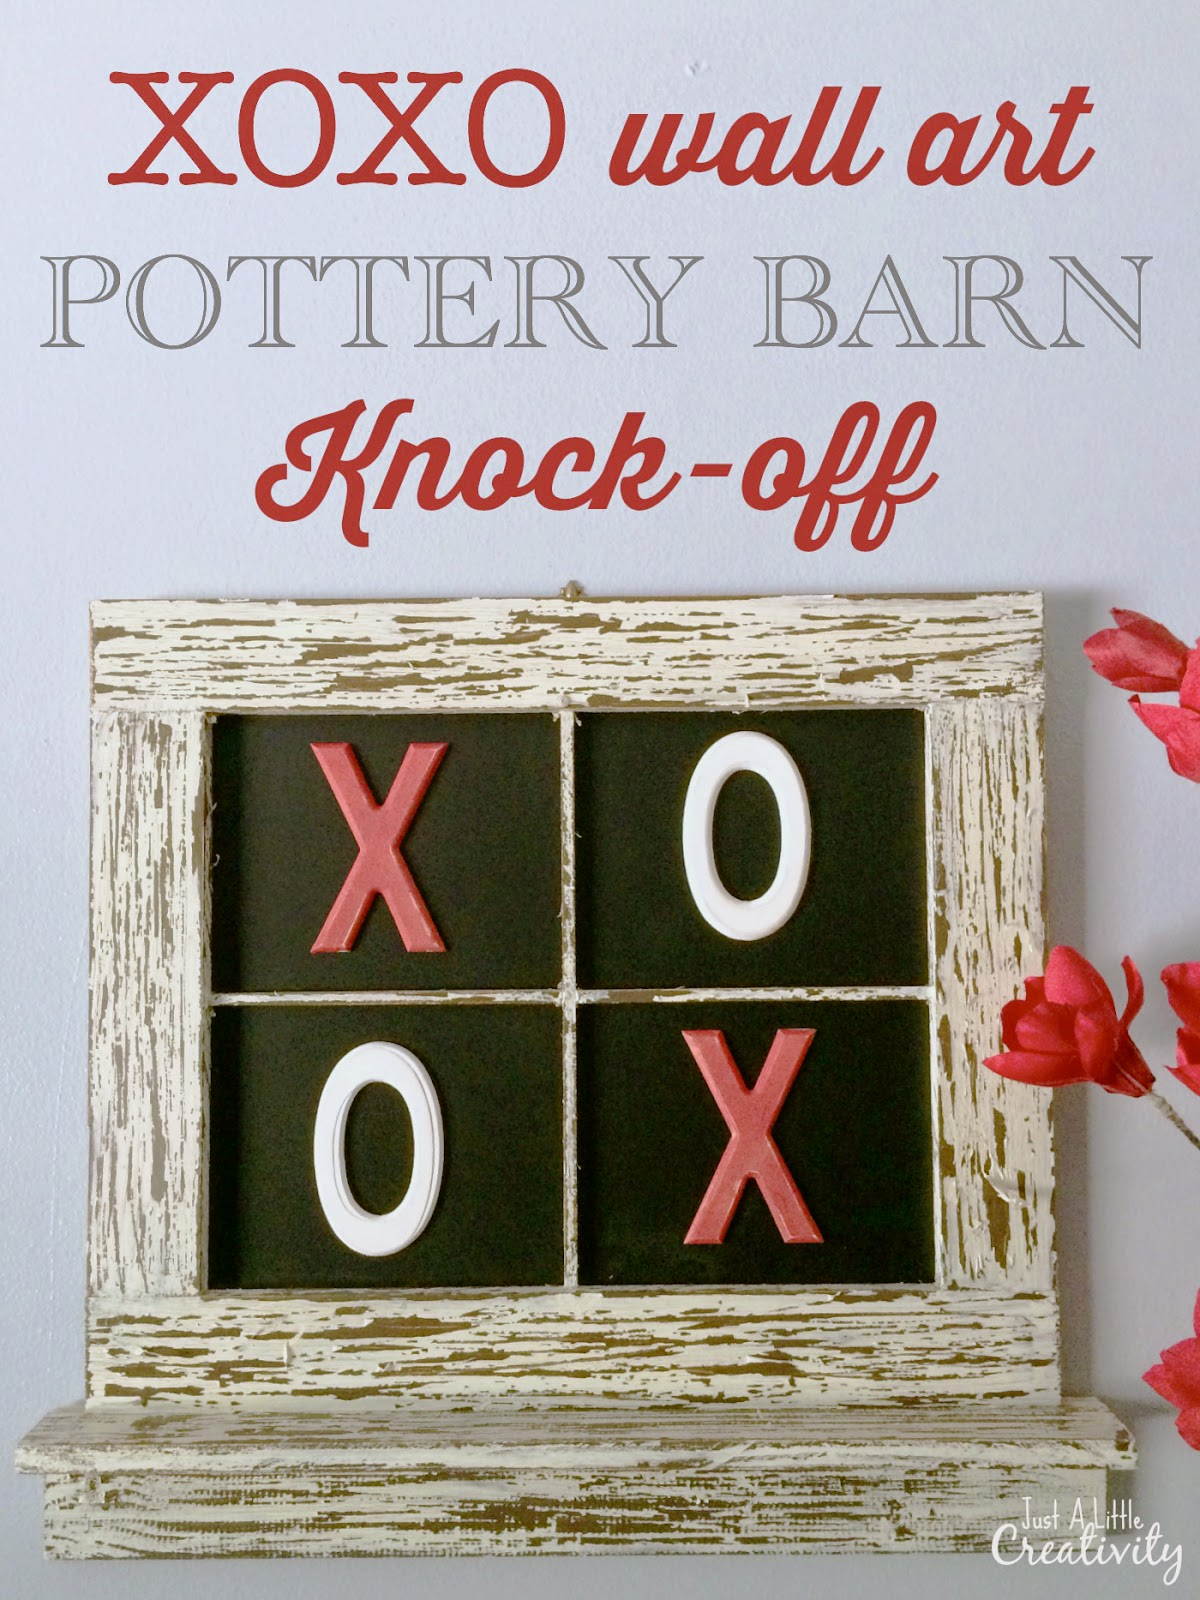 Xoxo Wall Art Pottery Barn Knock Off Just A Little